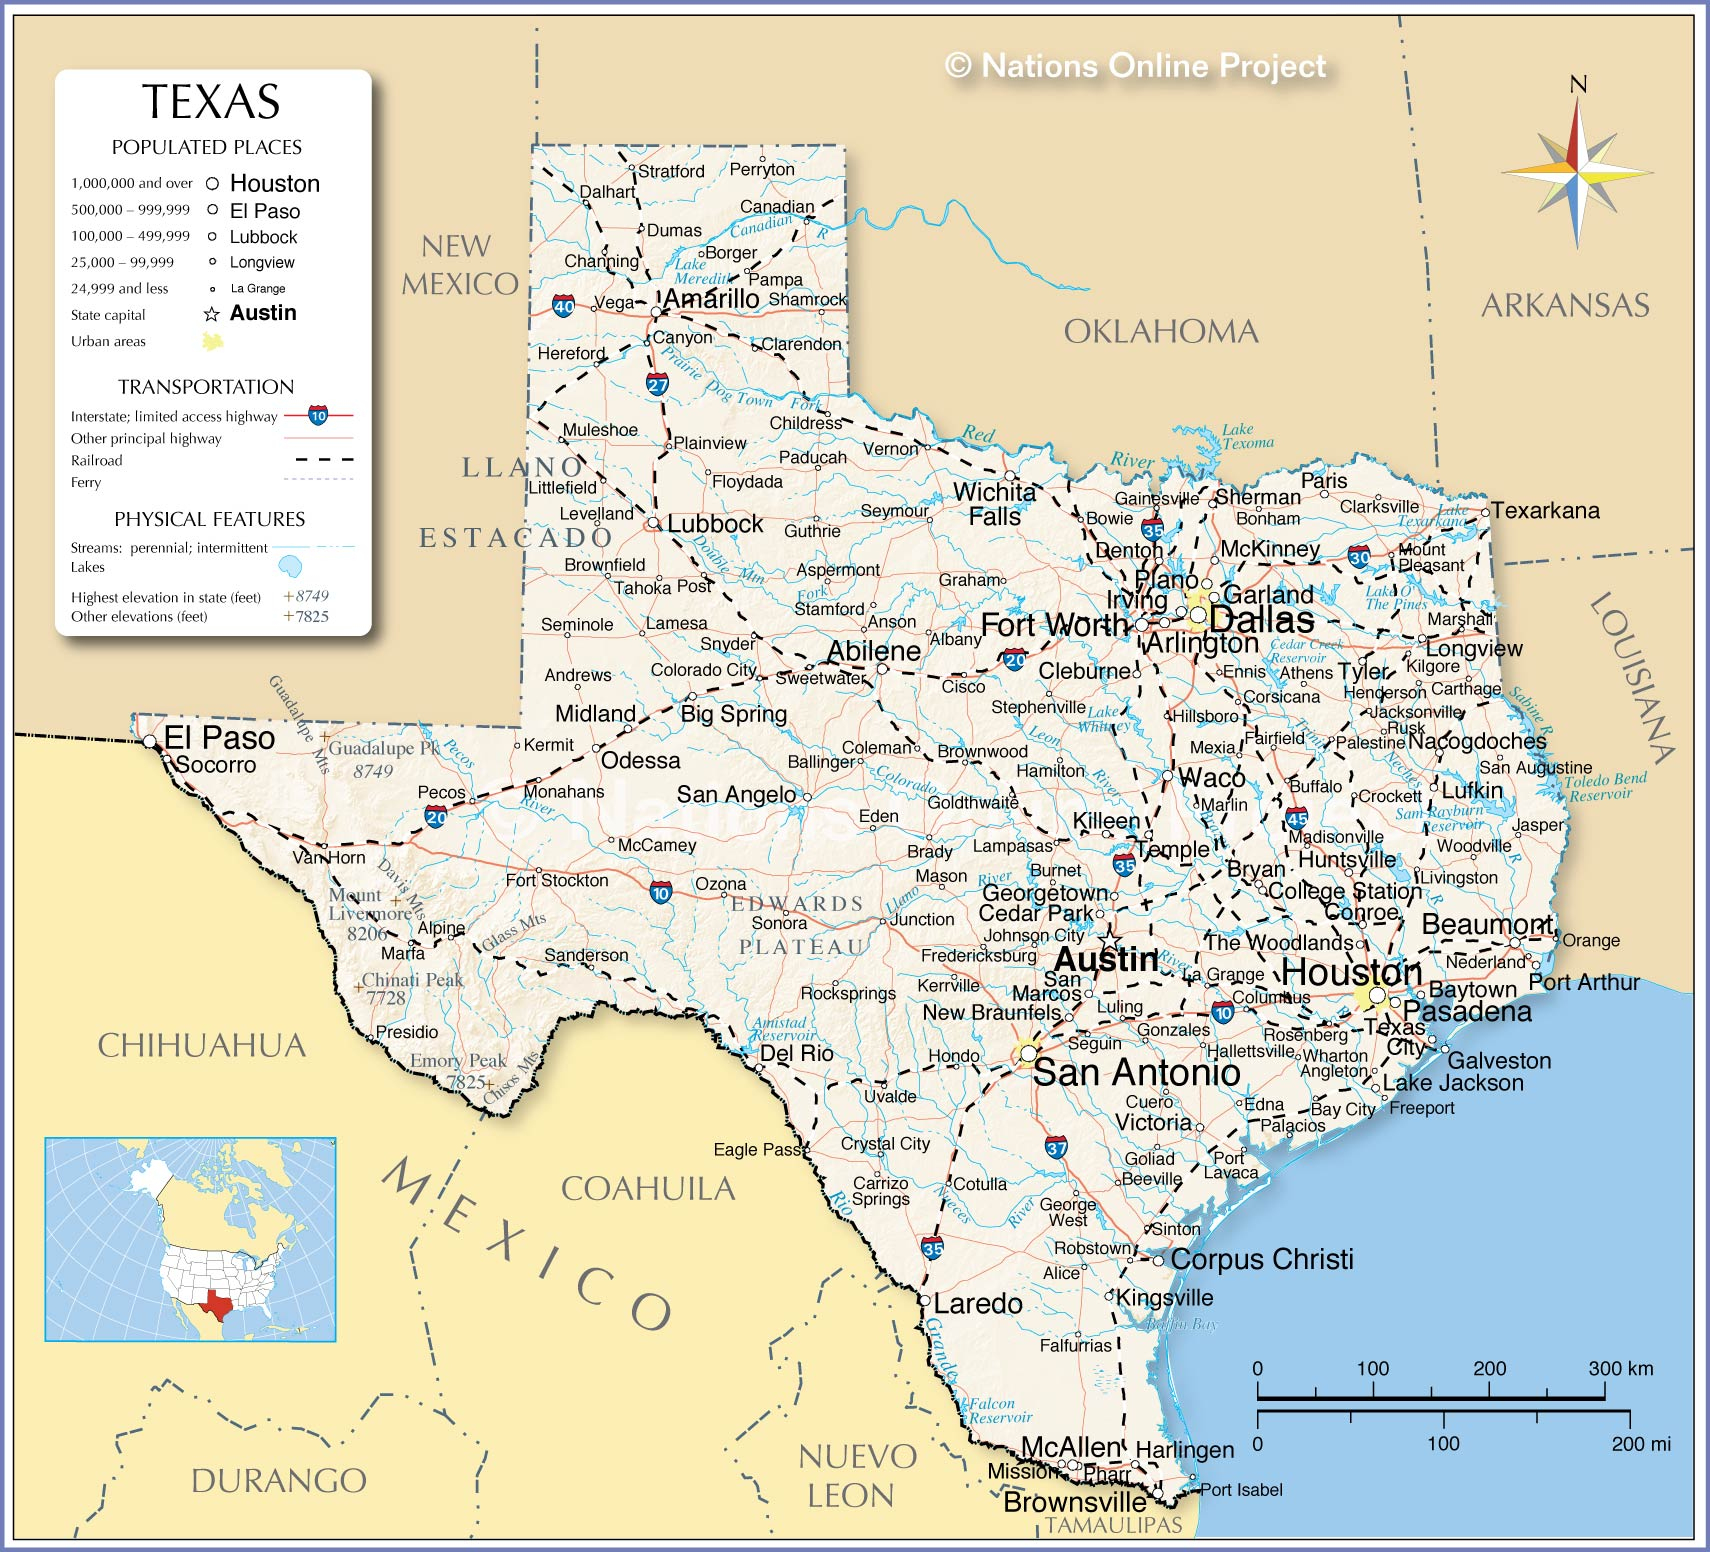 Reference Maps Of Texas, Usa - Nations Online Project - Texas Louisiana Border Map